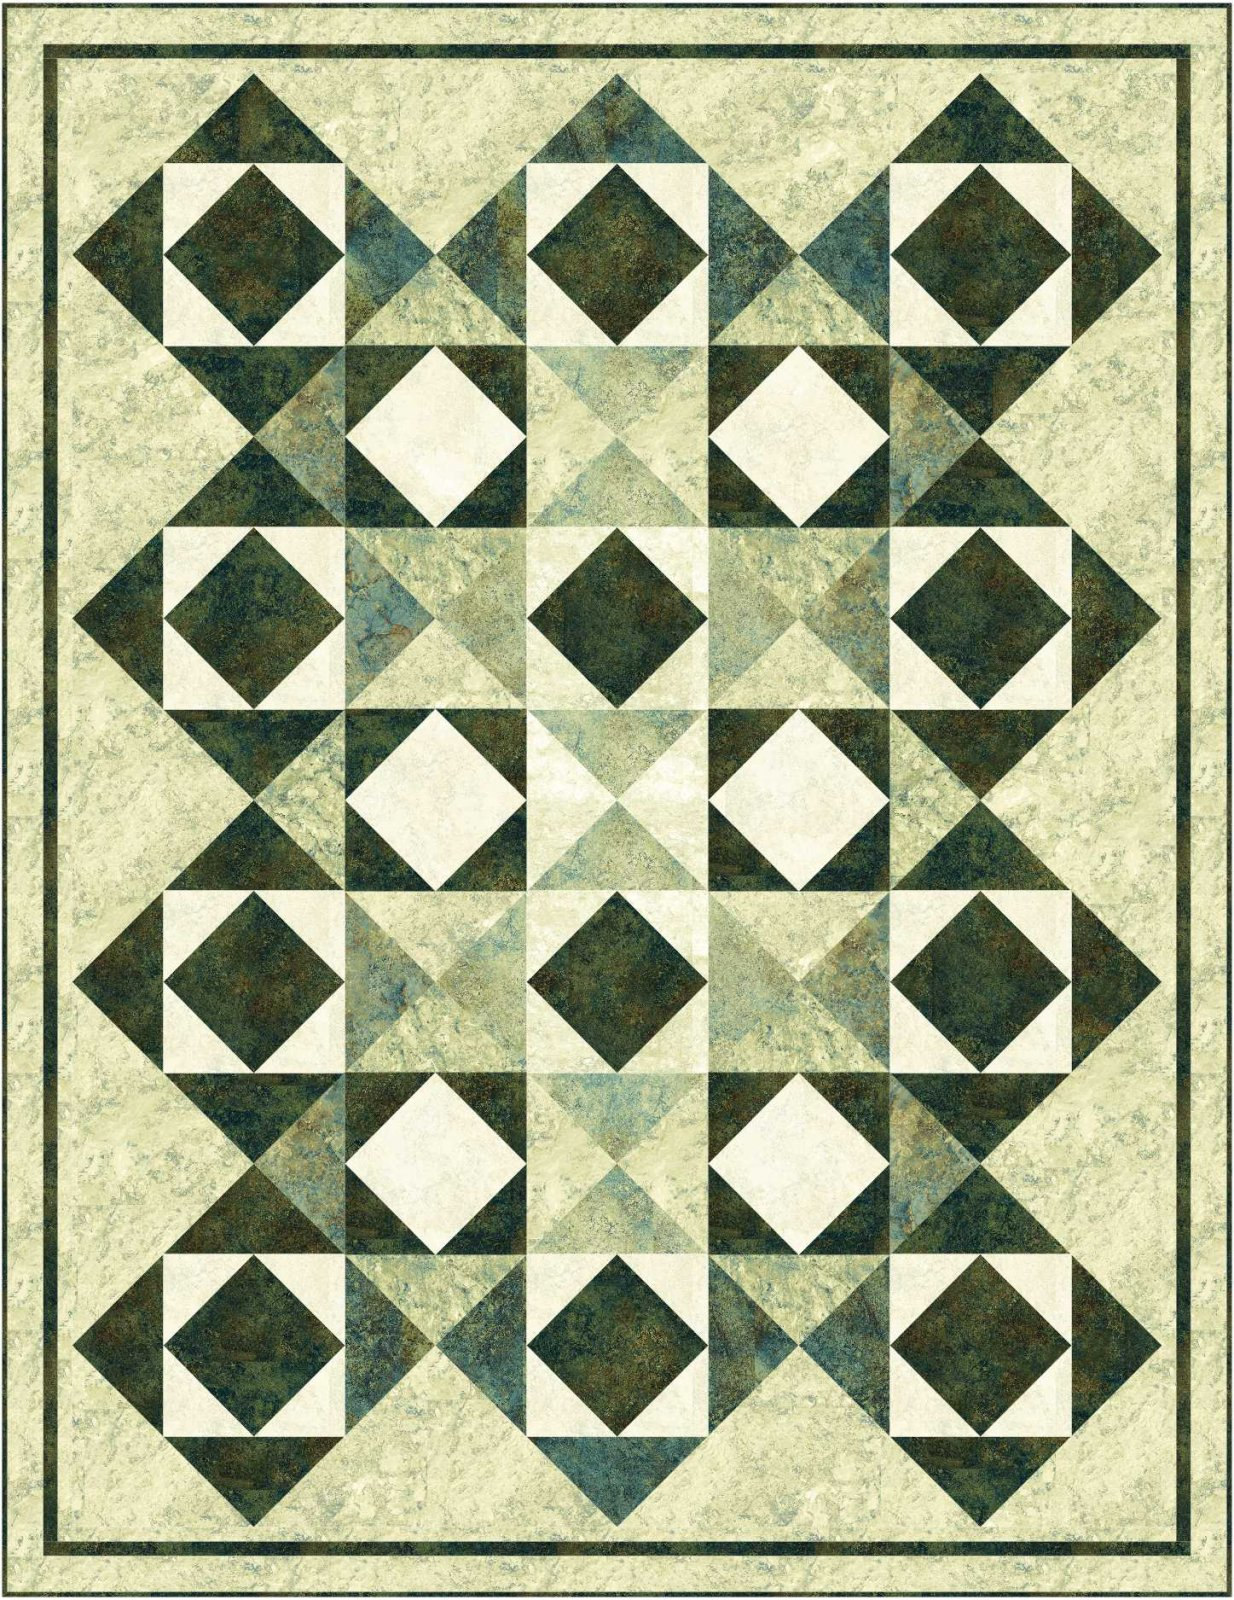 Diamond Mine Lap Quilt Kit